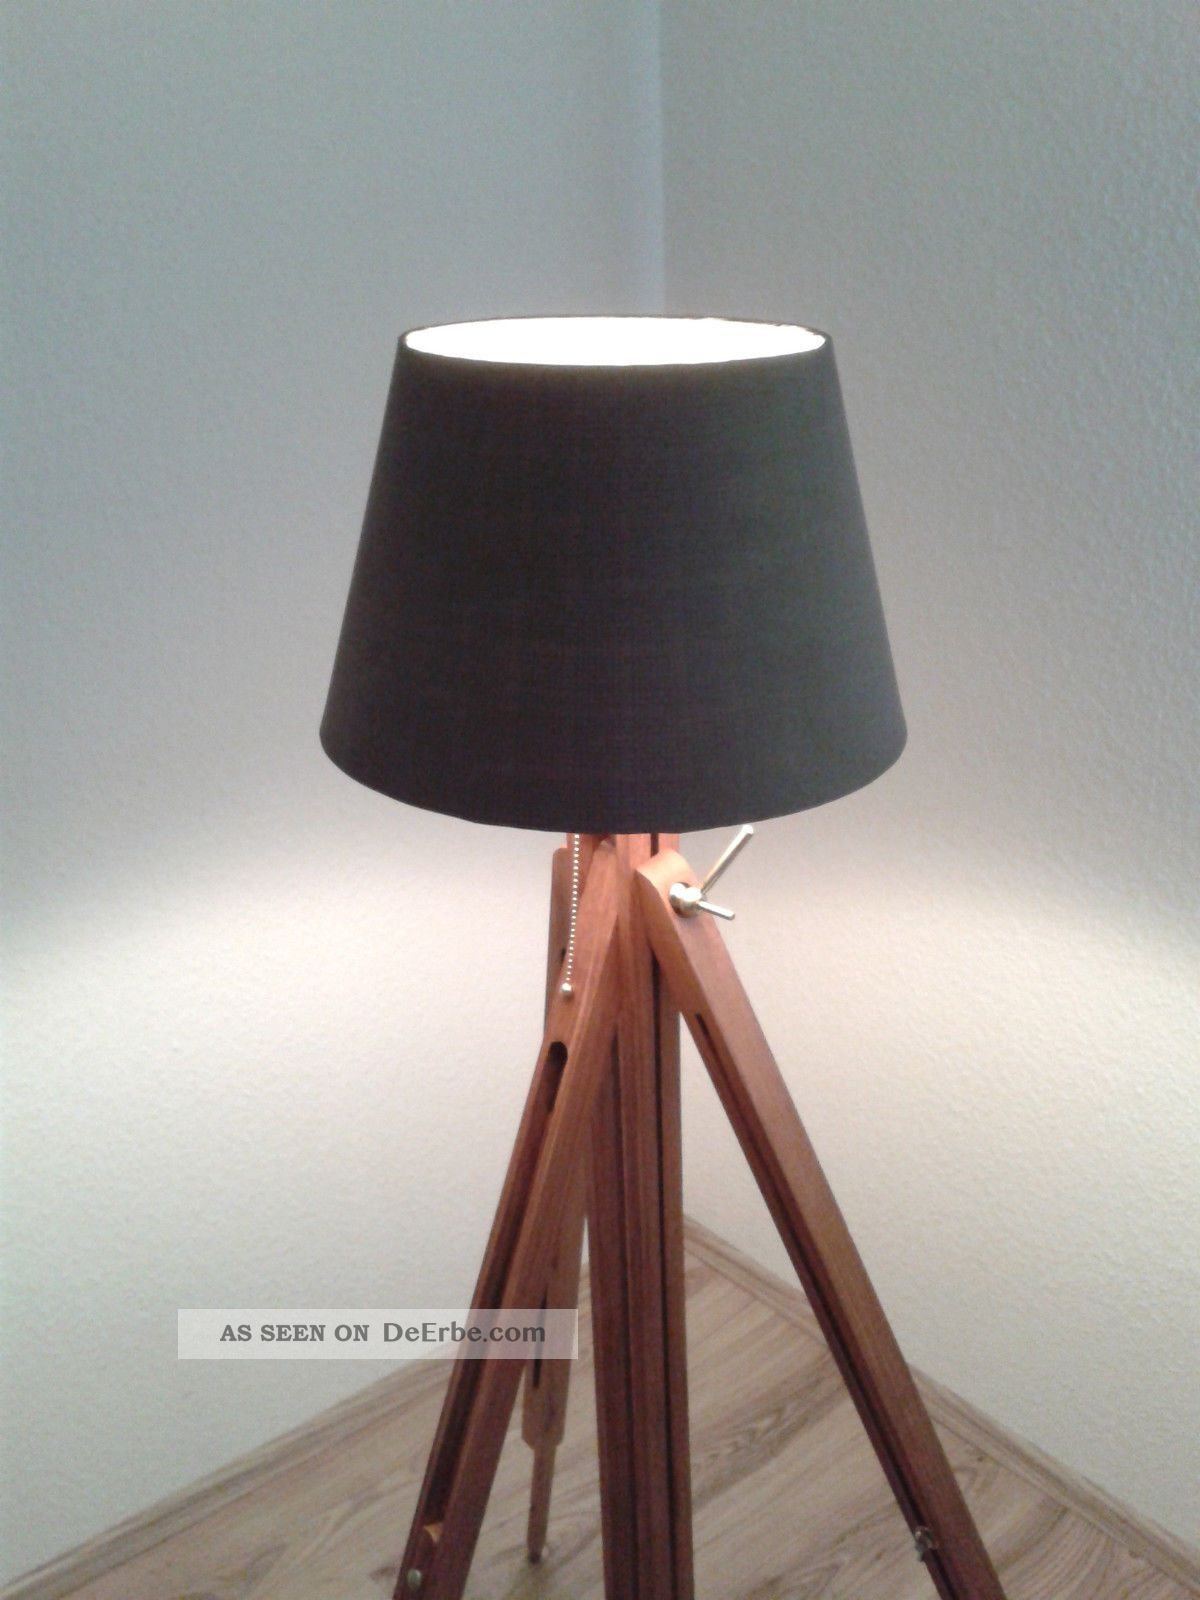 design lampe stehlampe bauhaus tripod lamp kugel architekt shabby chic holz. Black Bedroom Furniture Sets. Home Design Ideas